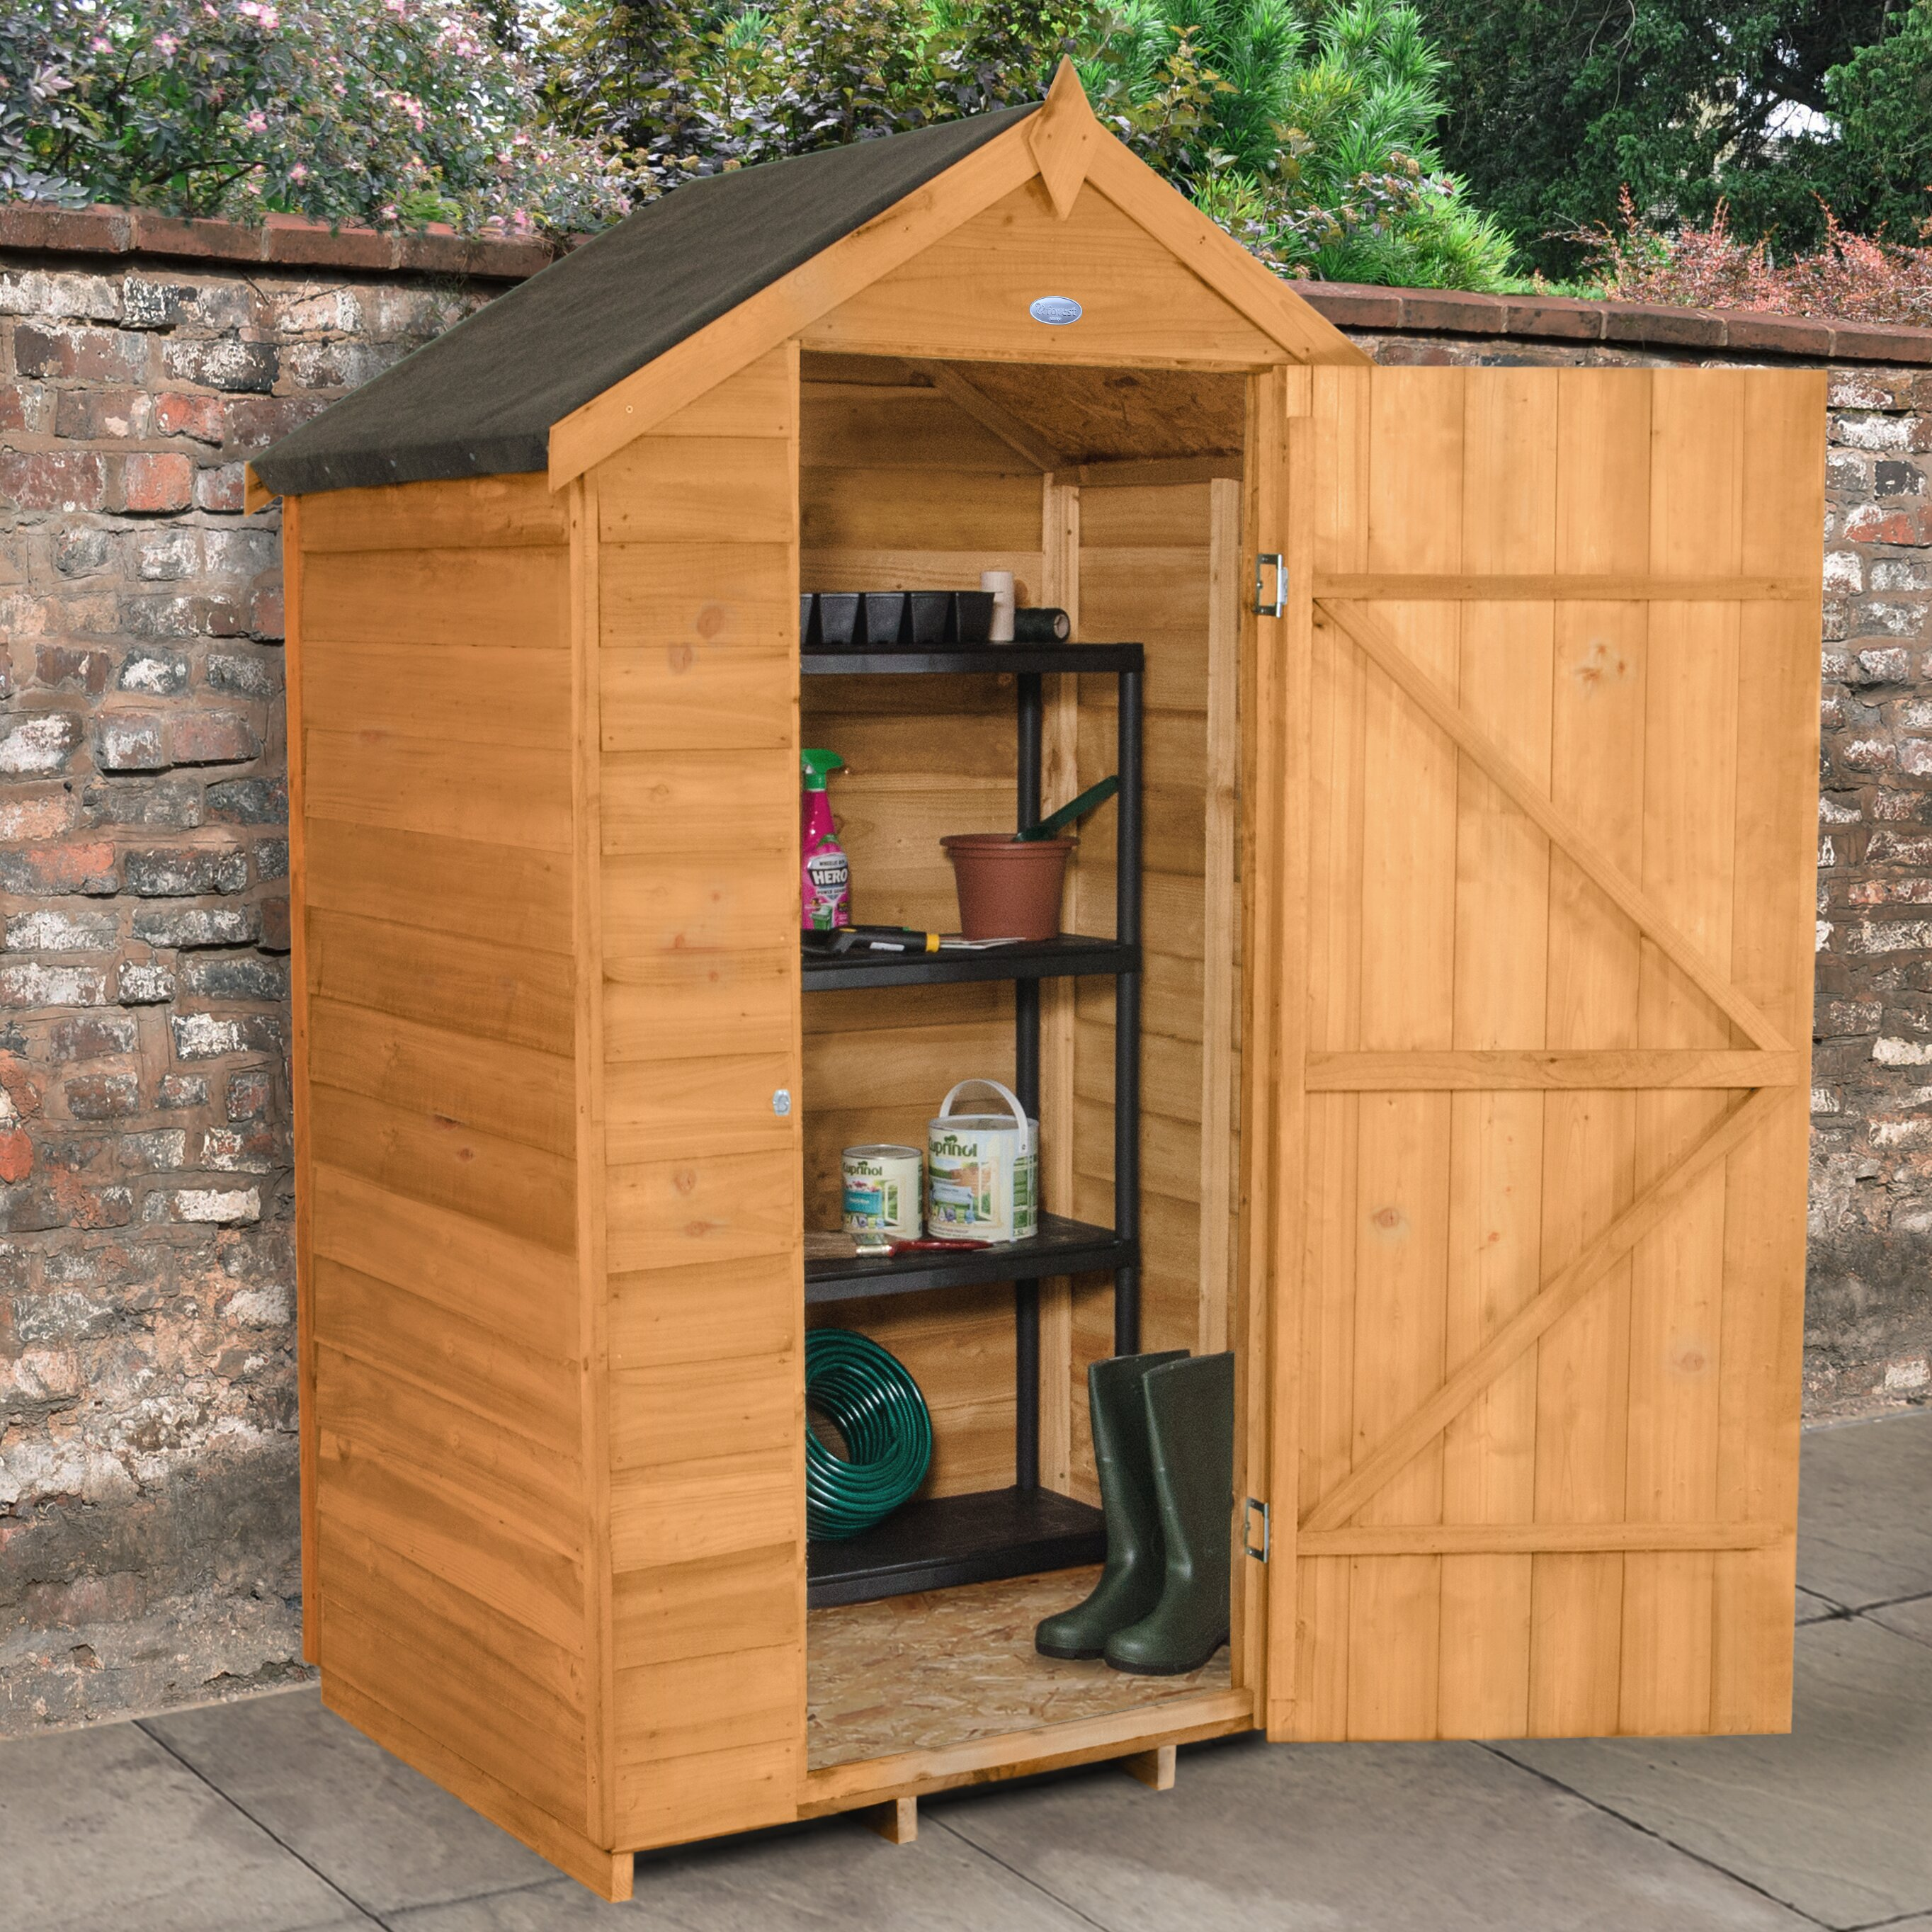 Forest Garden 4 X 3 Wooden Storage Shed